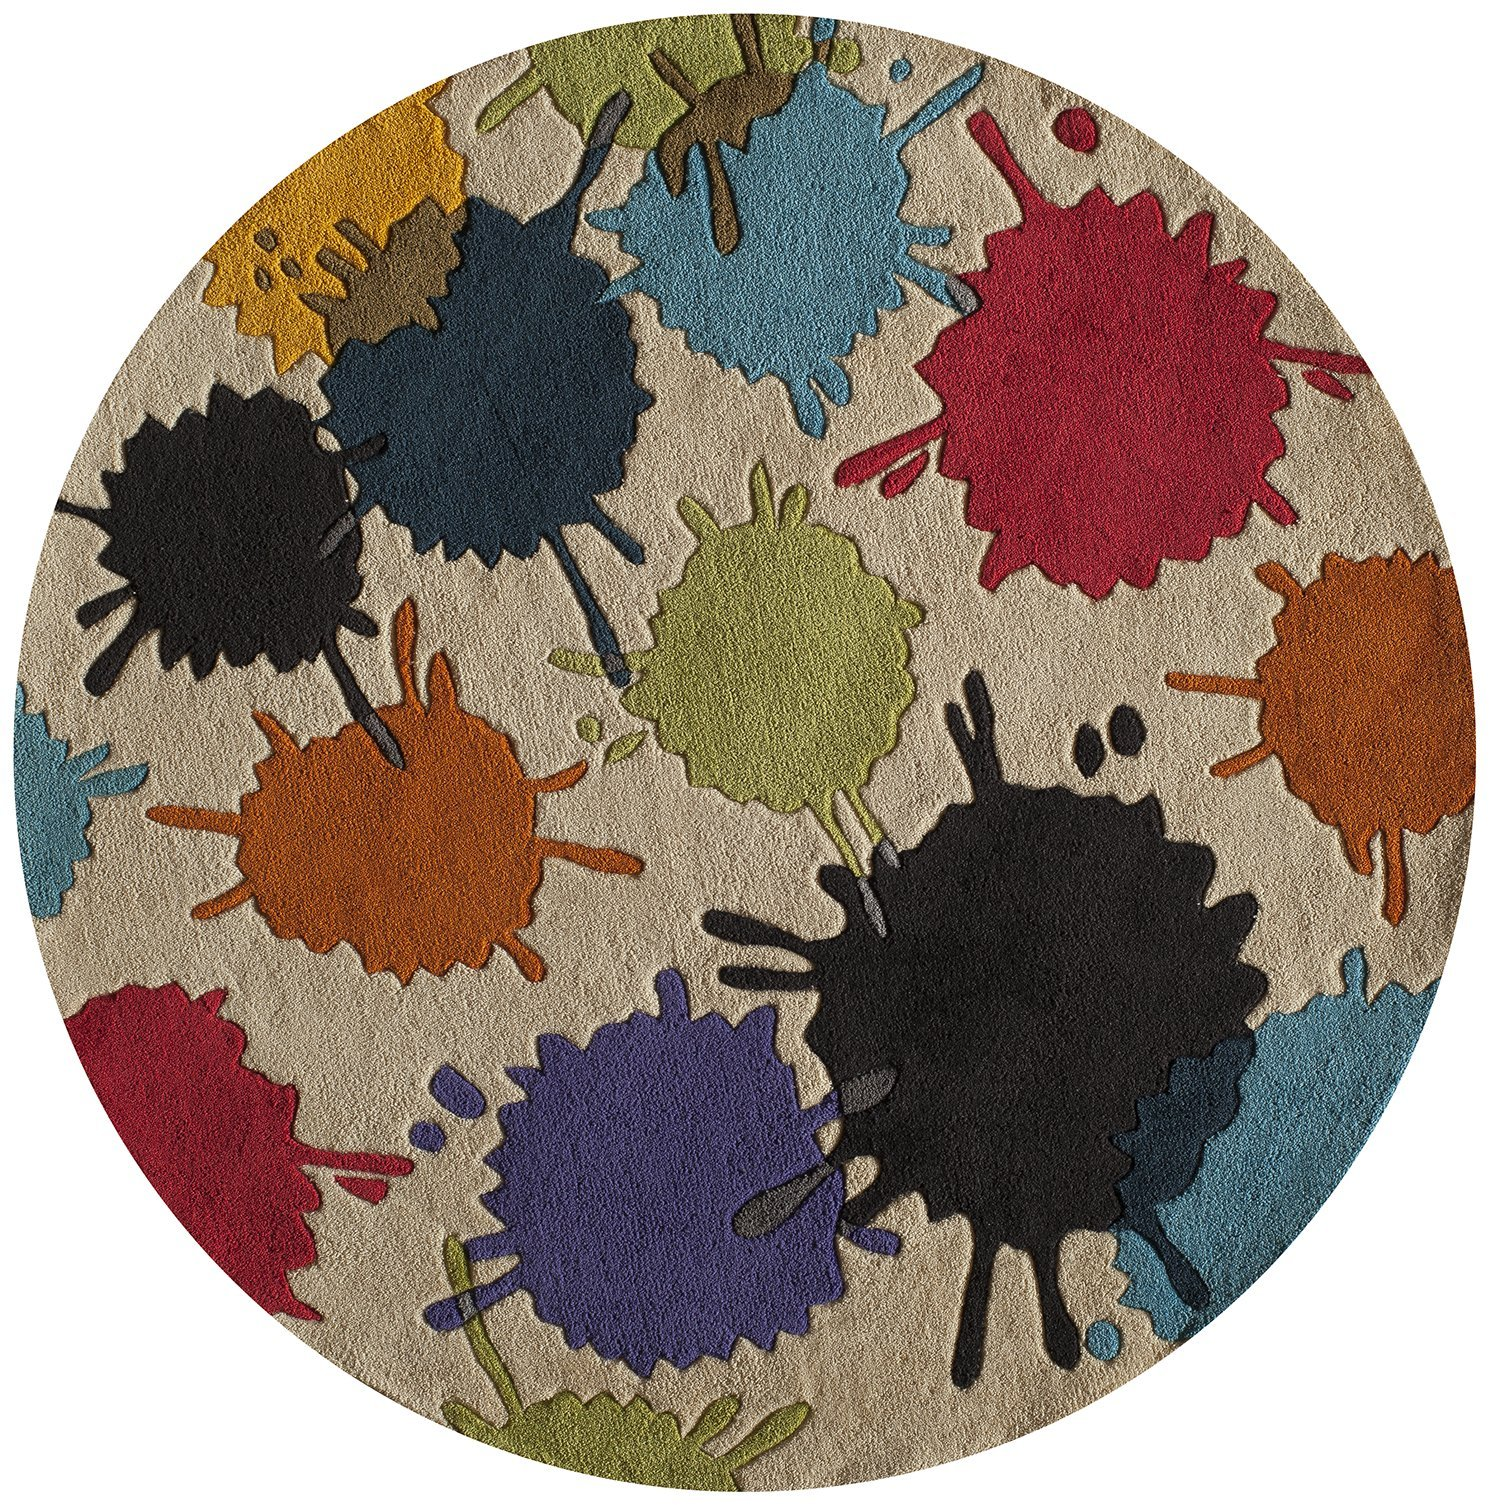 Momeni Rugs LMOTWLMT-9IVY500R Lil' Mo Hipster Collection, Kids Themed Hand Carved & Tufted Area Rug, 5' Round, Ivory